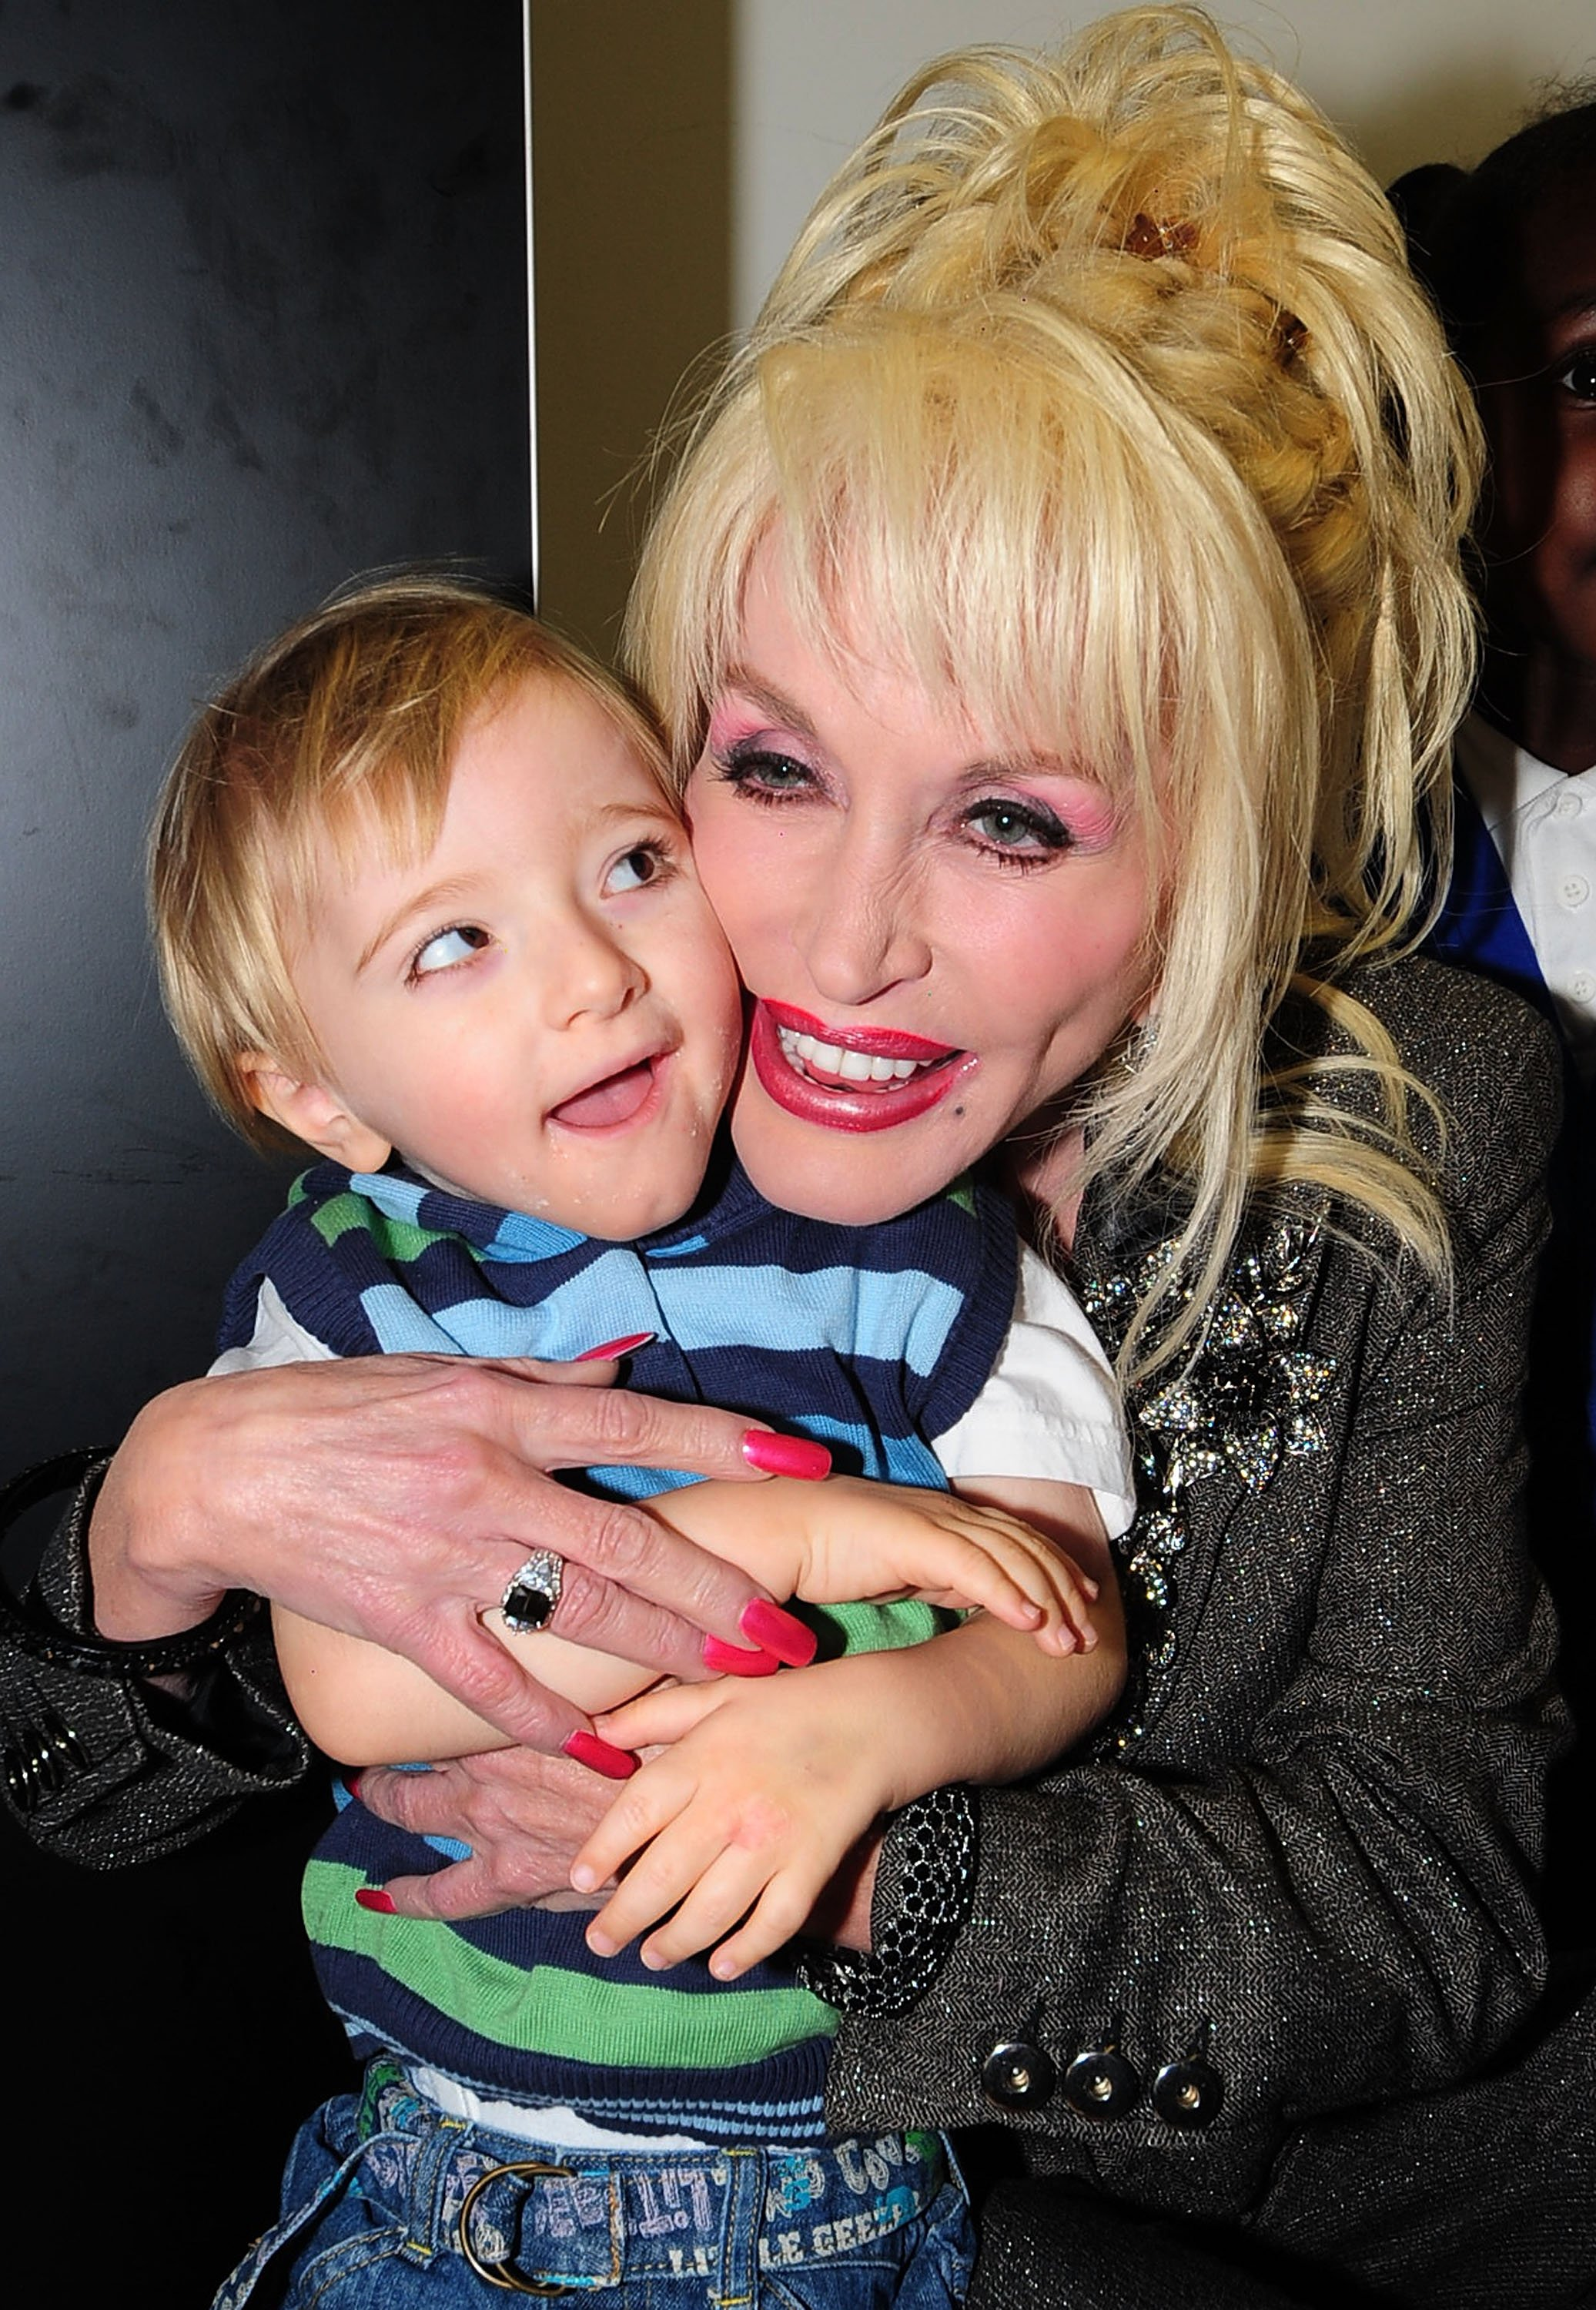 Image Credits: Getty Images / Pool | Country and western superstar singer Dolly Parton meets young children at the Magna Science And Adventure Park on December 5, 2007 in Rotherham, South Yorkshire, England. Dolly Parton honoured the former steelworks town to be the first European location to participate in her 'Imagination Library' literacy scheme.